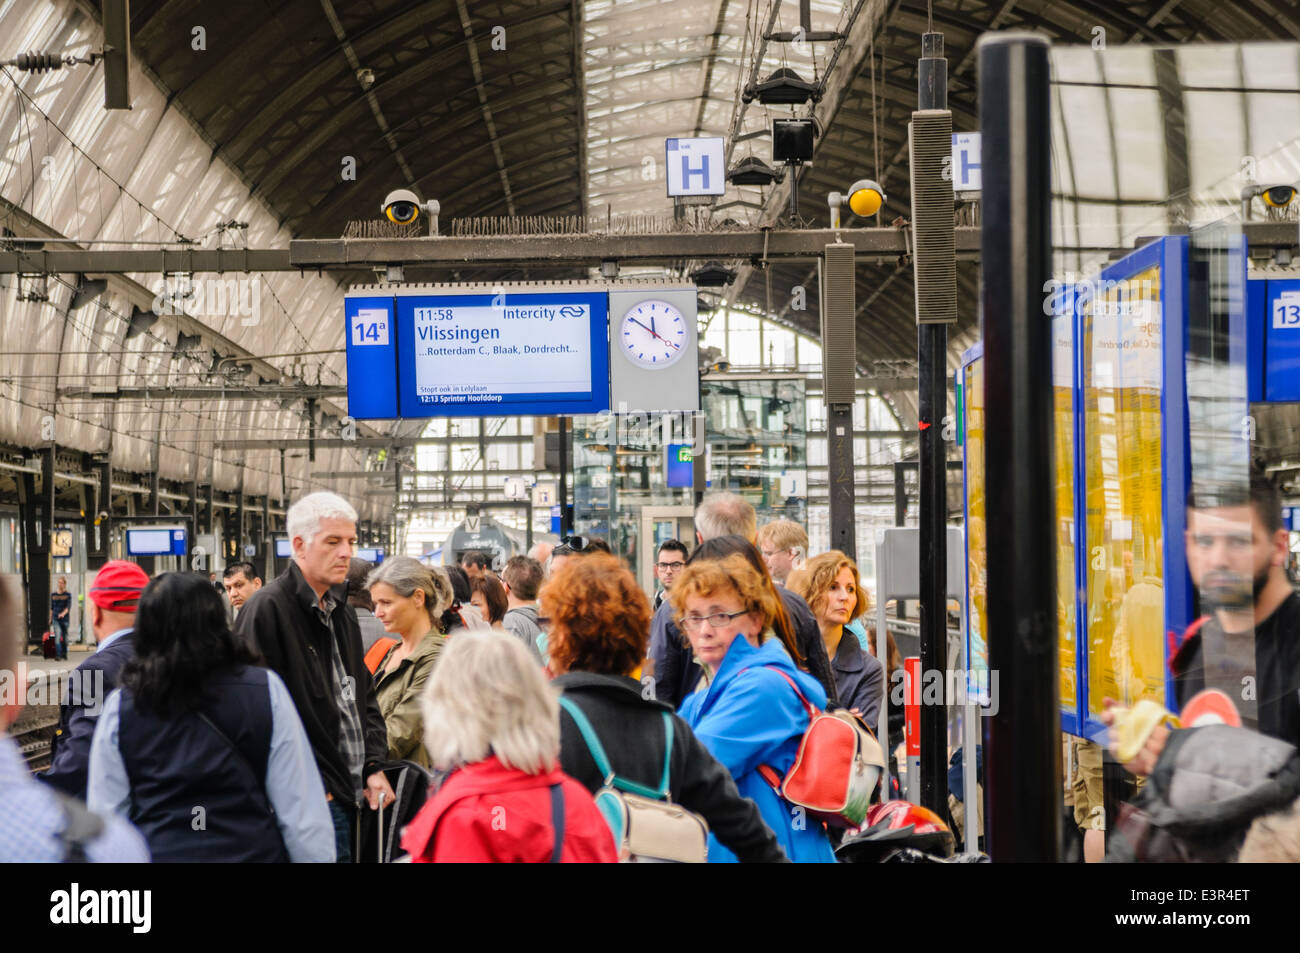 Passengers wait on a platform in Amsterdam Centraal Station for a train Stock Photo